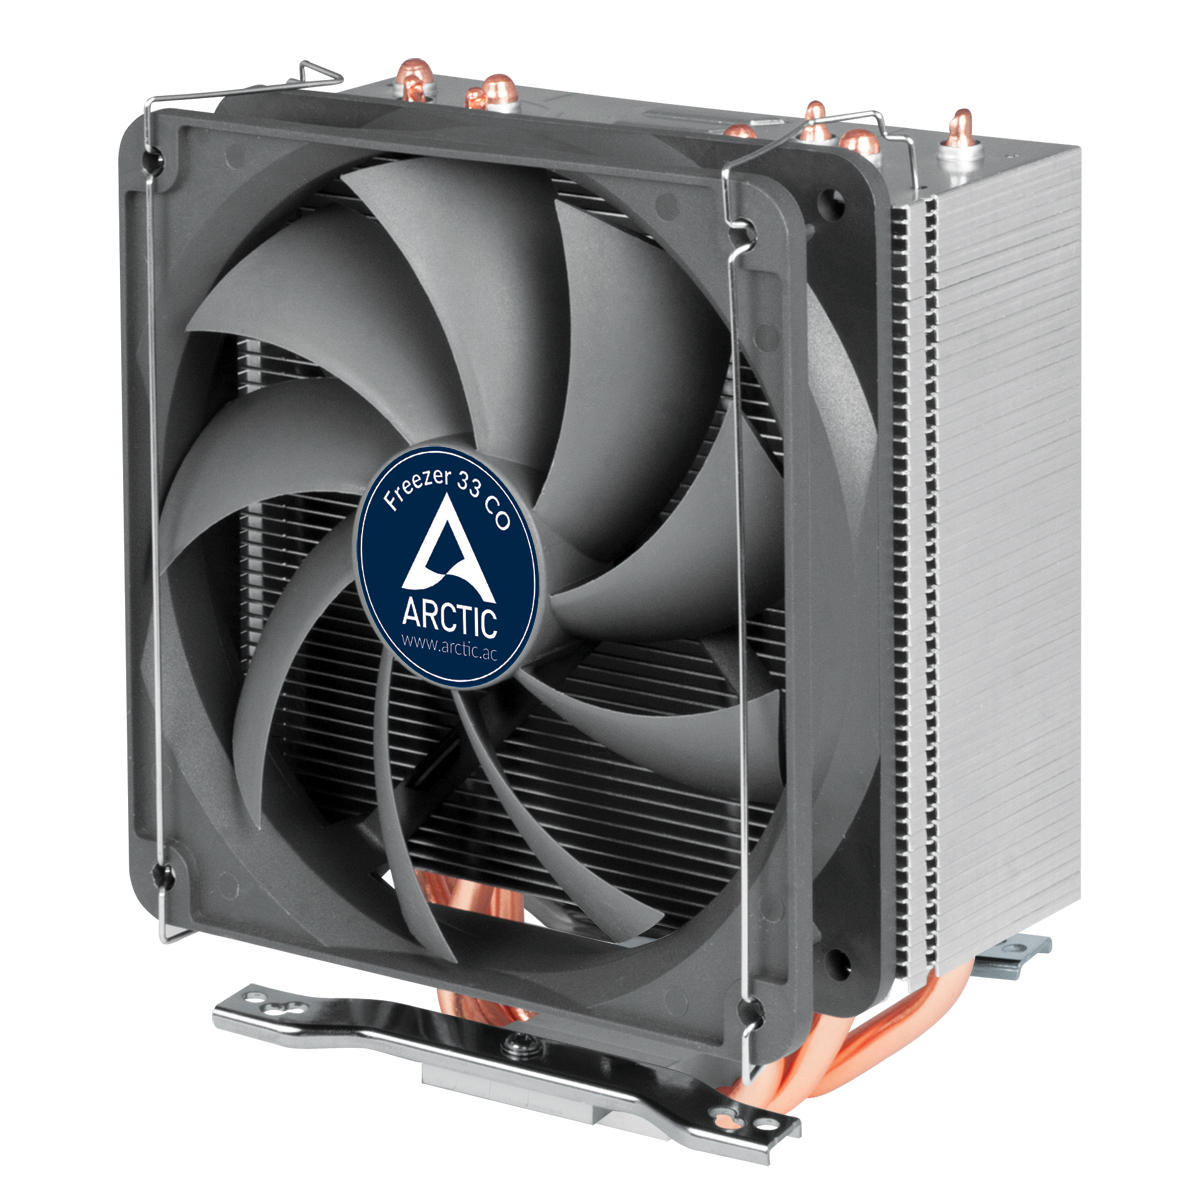 ACFRE00031A ARCTIC Freezer 33 CO Processor Cooler - Ent01